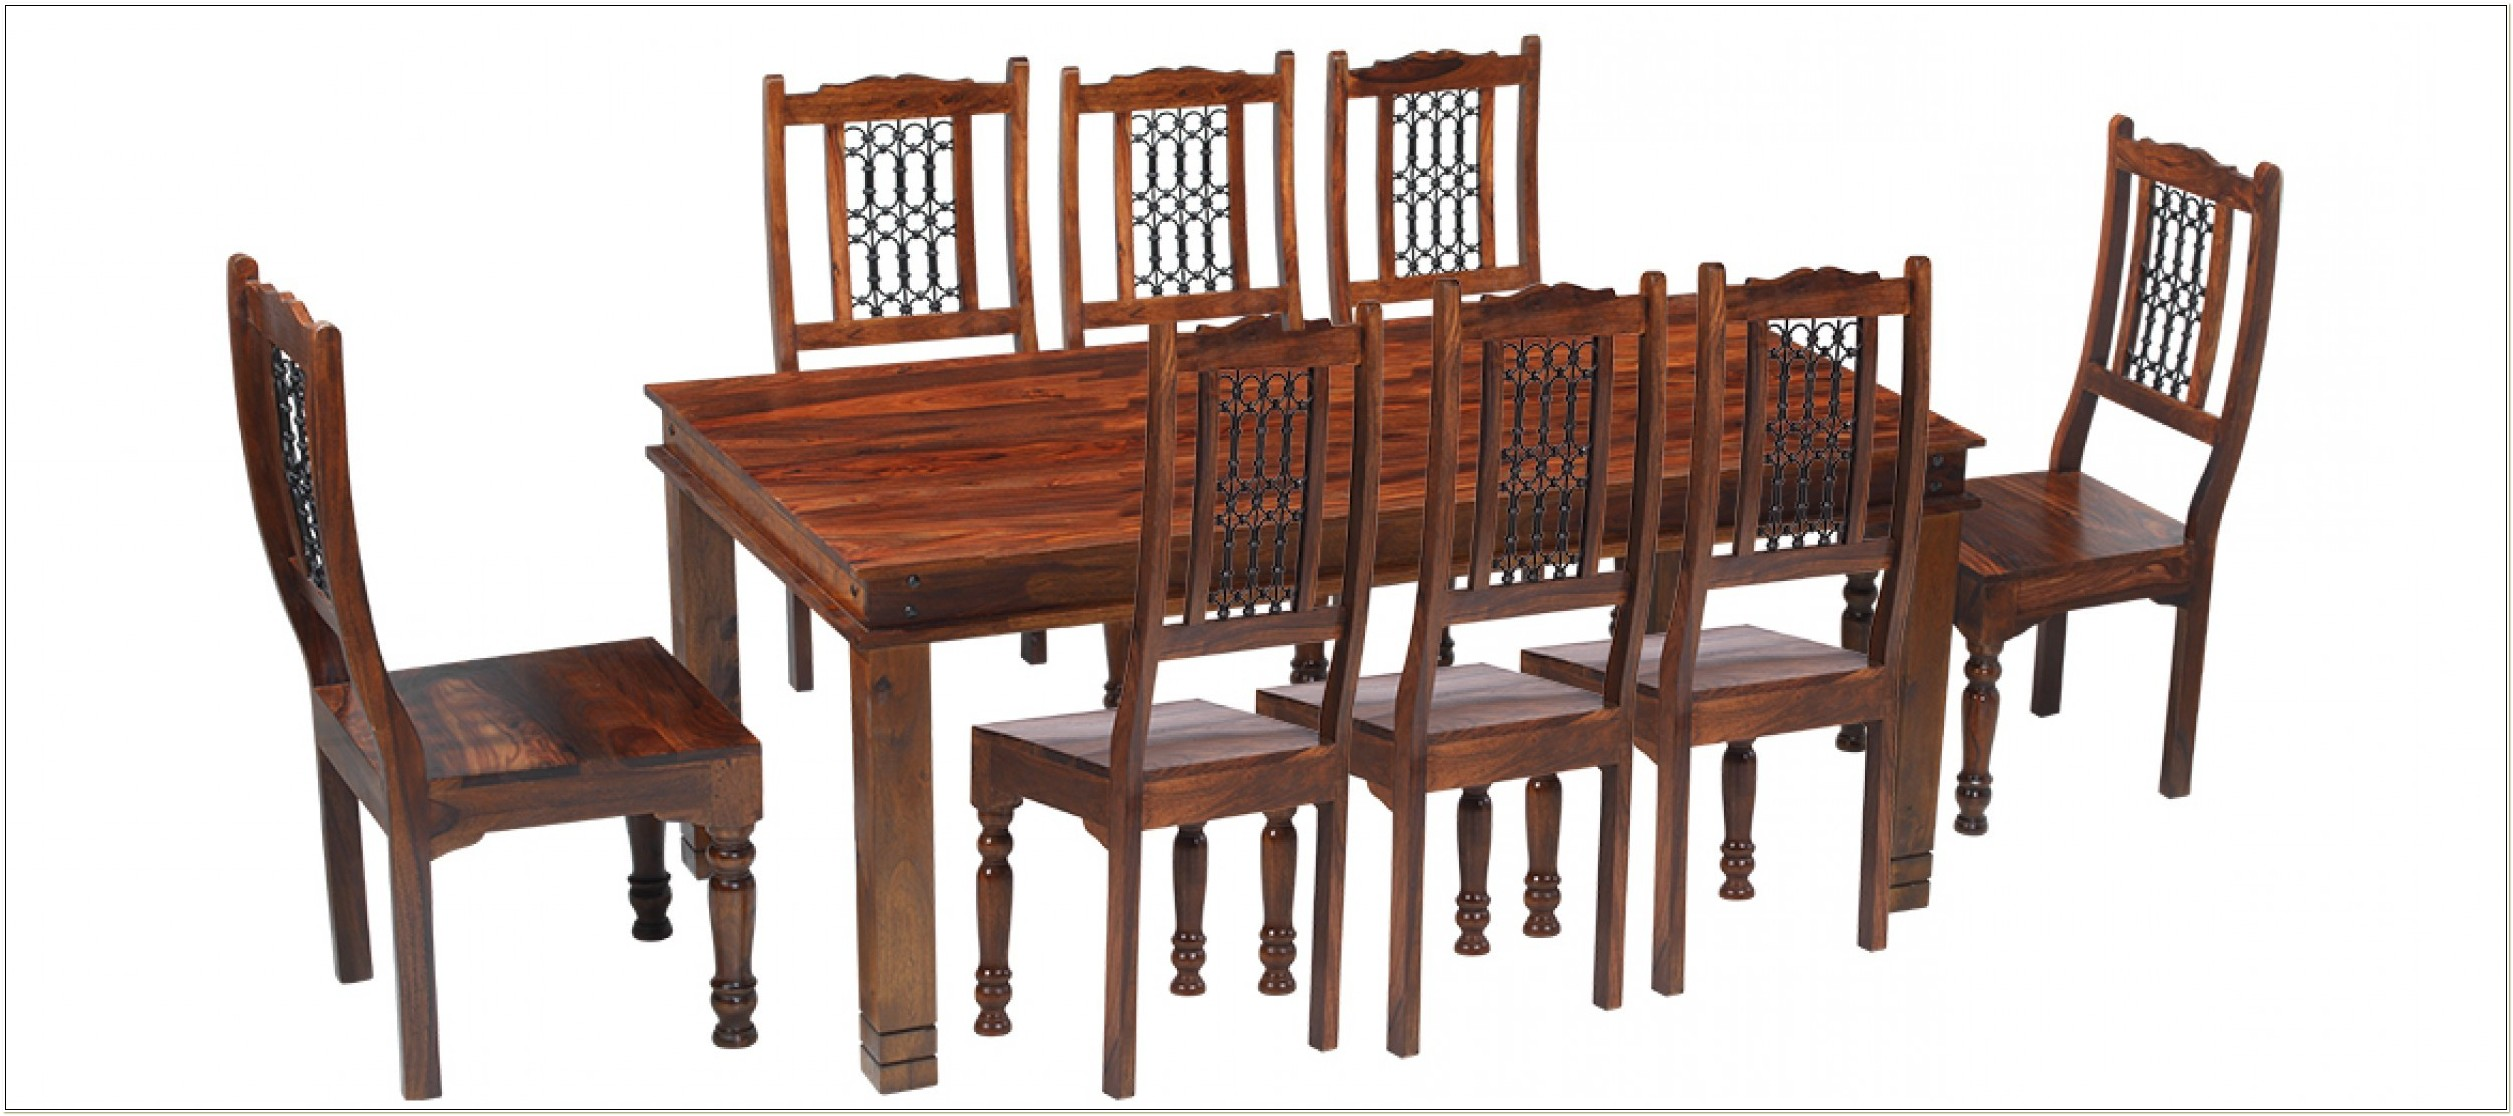 Sheesham Jali Dining Table And Chairs